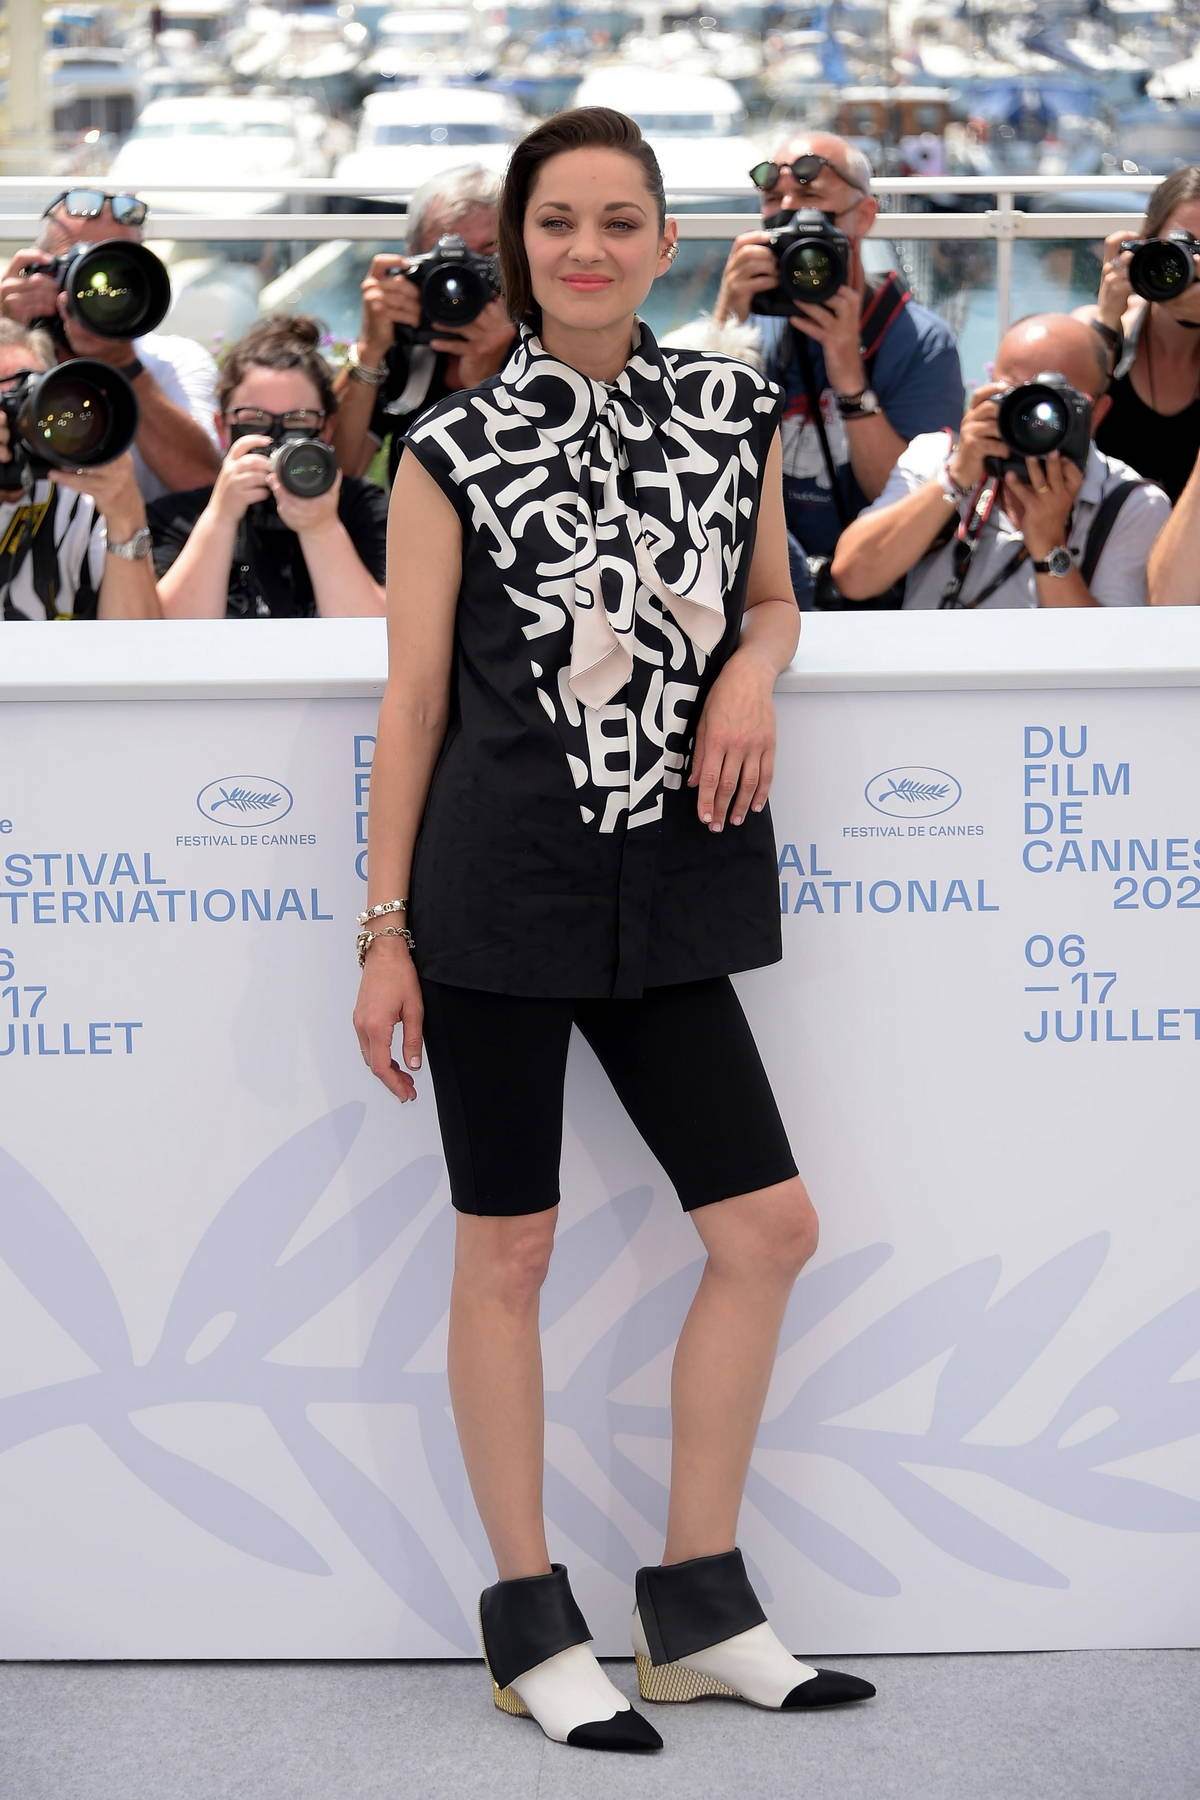 Marion Cotillard attends the 'Annette' photocall during the 74th annual Cannes Film Festival in Cannes, France